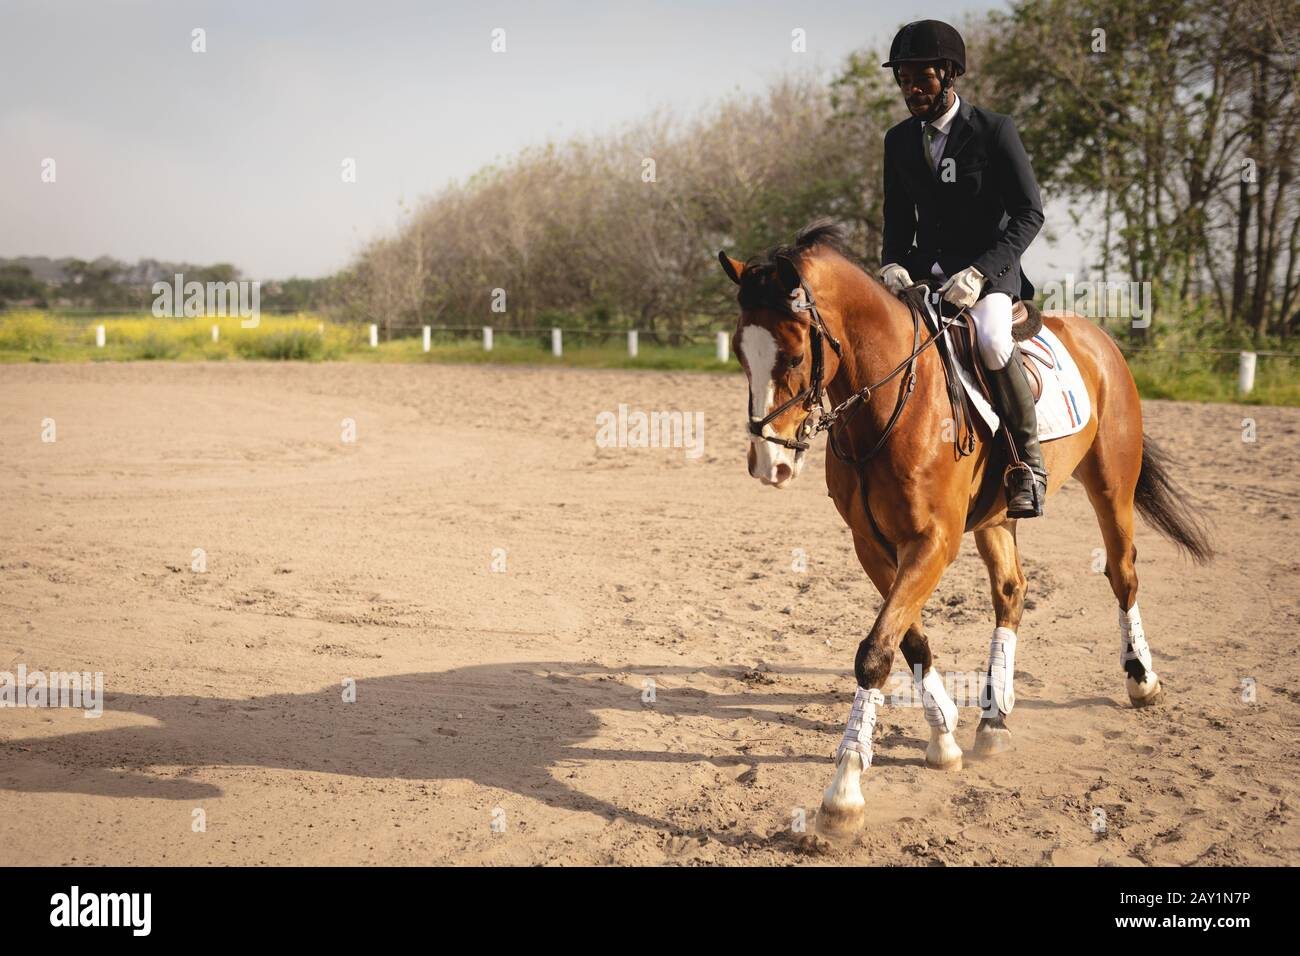 Man Riding His Dressage Horse On A Show Jumping Event Stock Photo Alamy